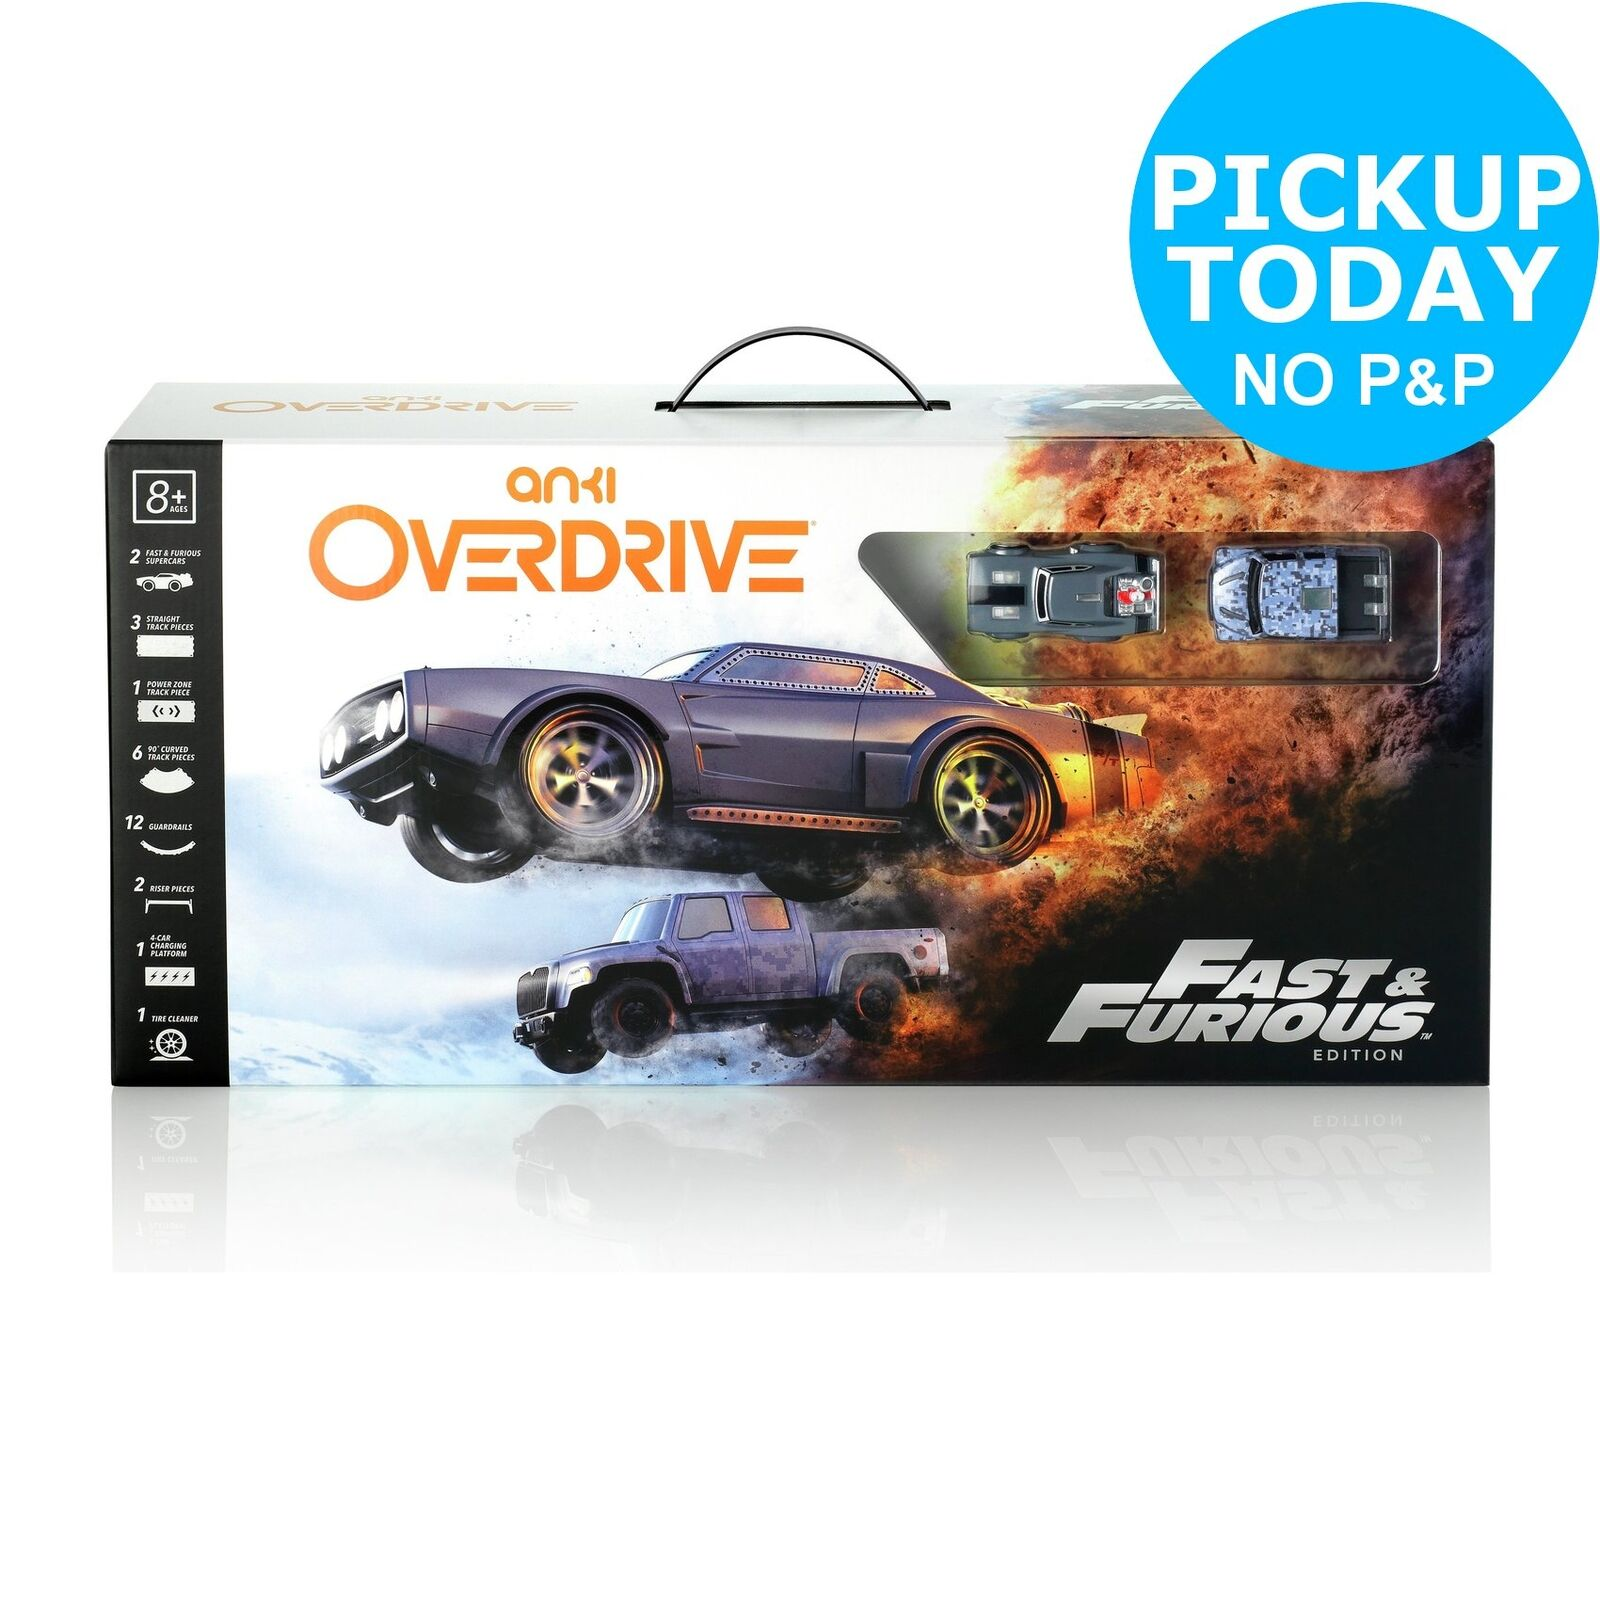 Overdrive Starter Kit Fast and Furious Edition 8+ Years